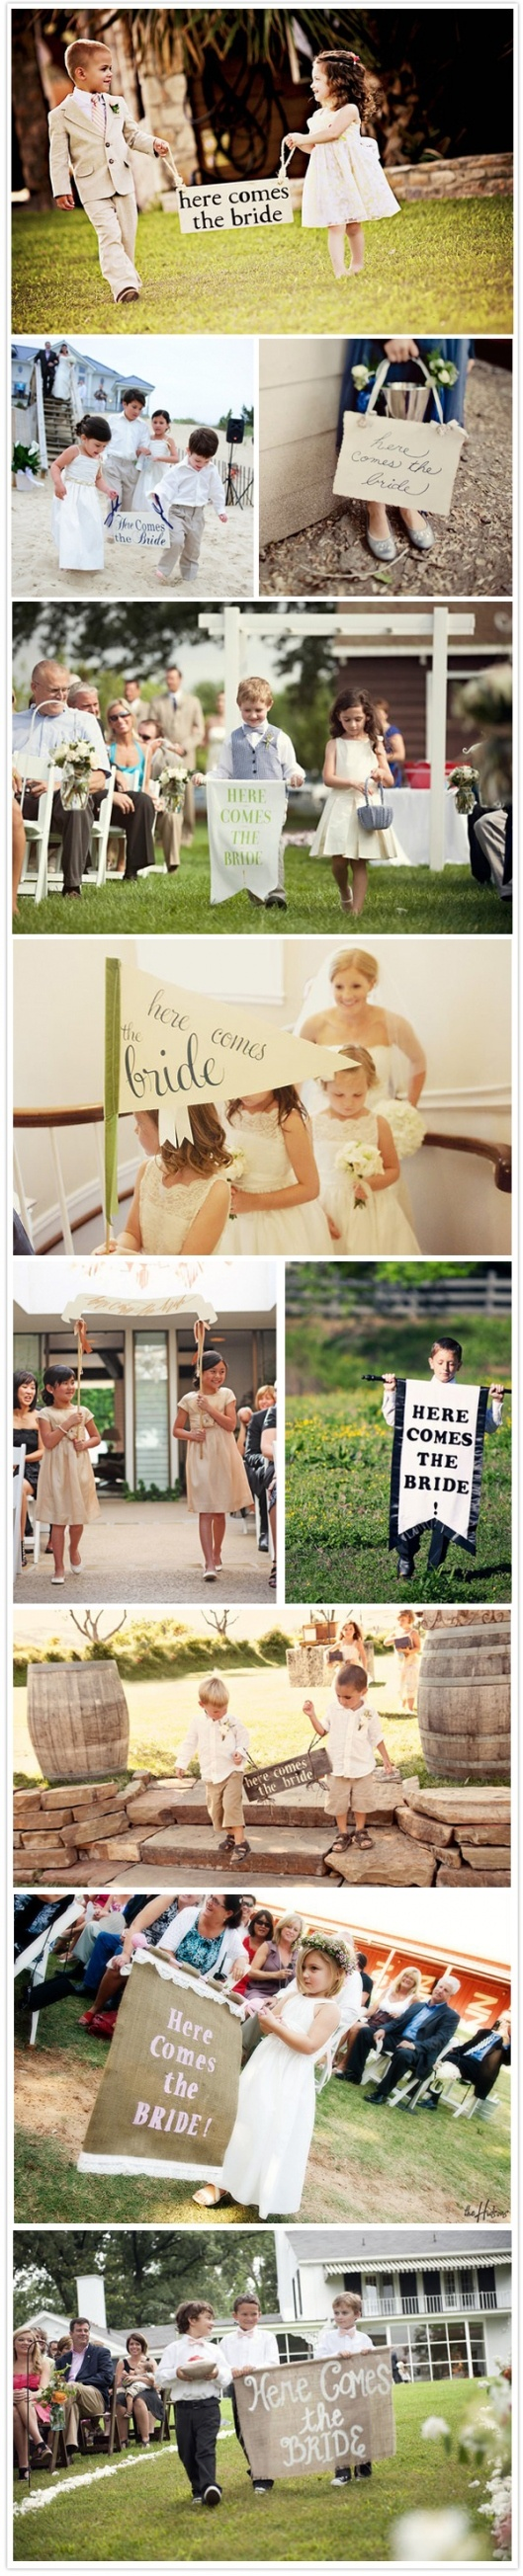 round-up | here comes the bride sign